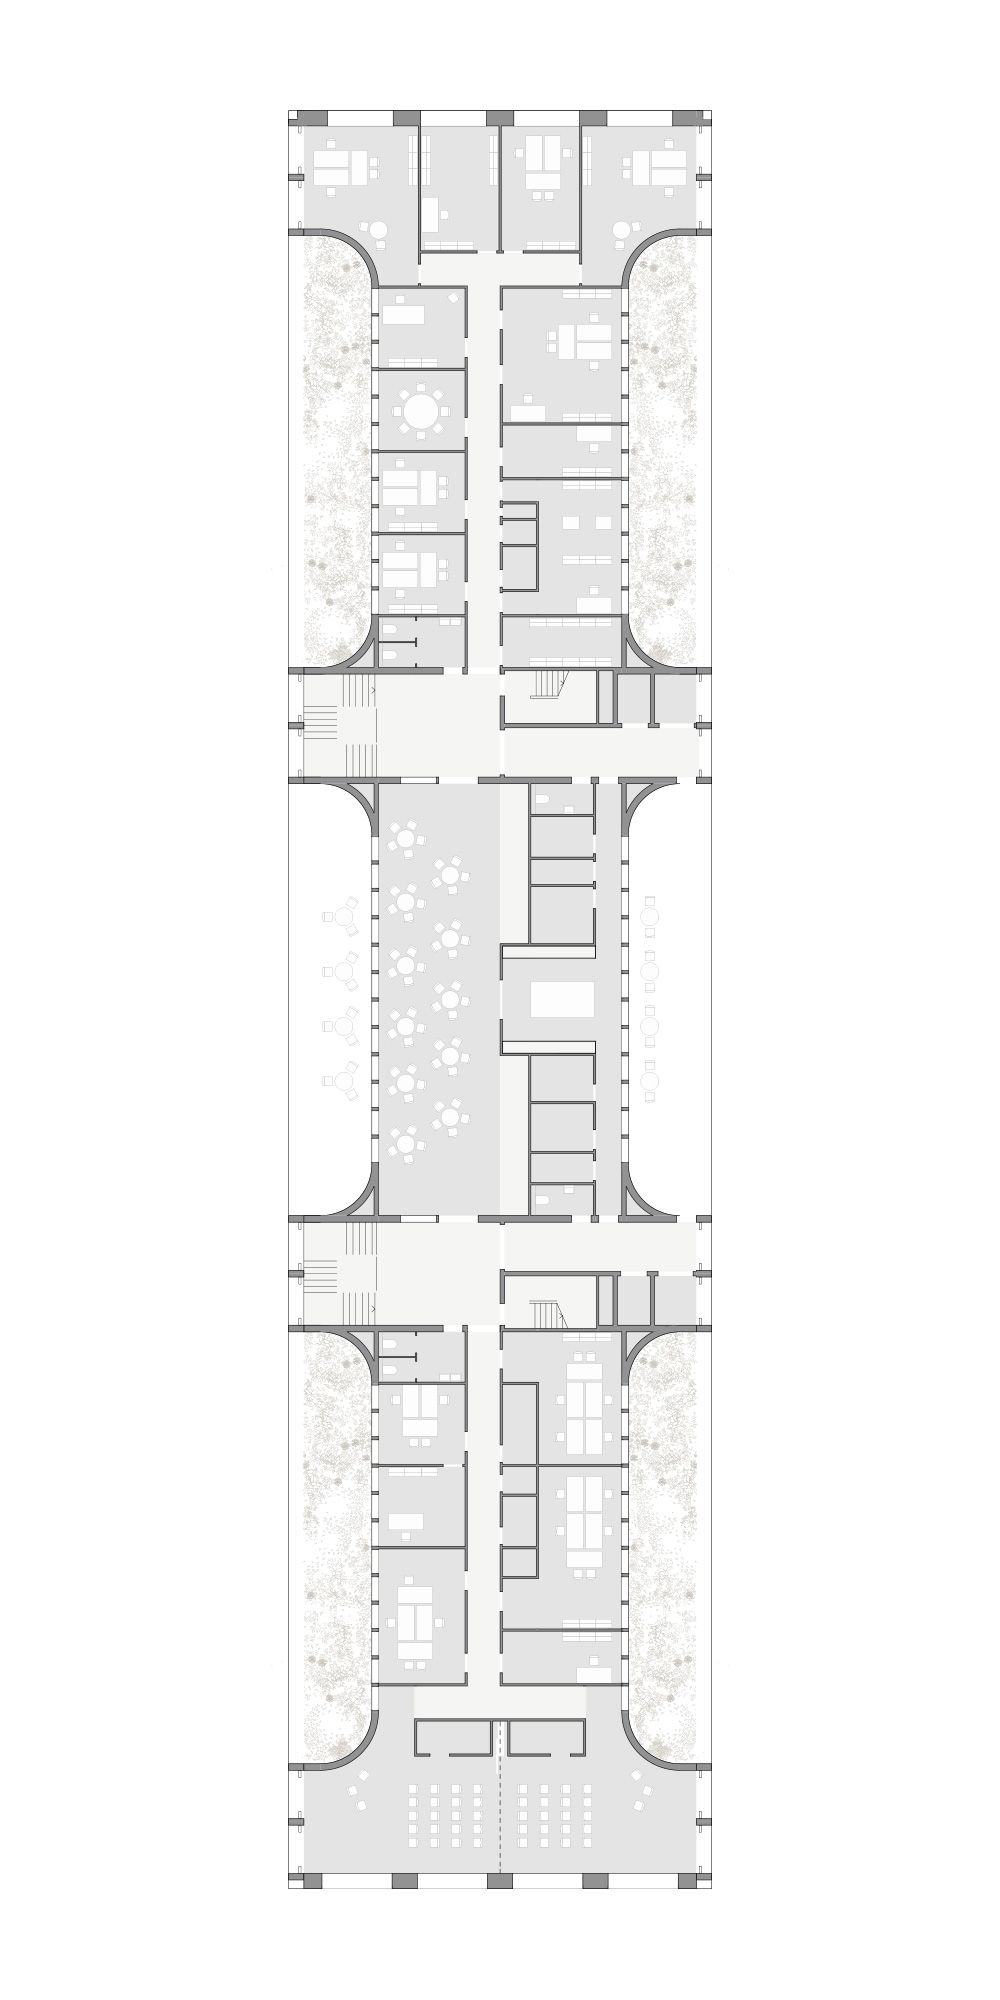 Pin By N Sch On Architecture Floor Plan Pinterest How To And Plans